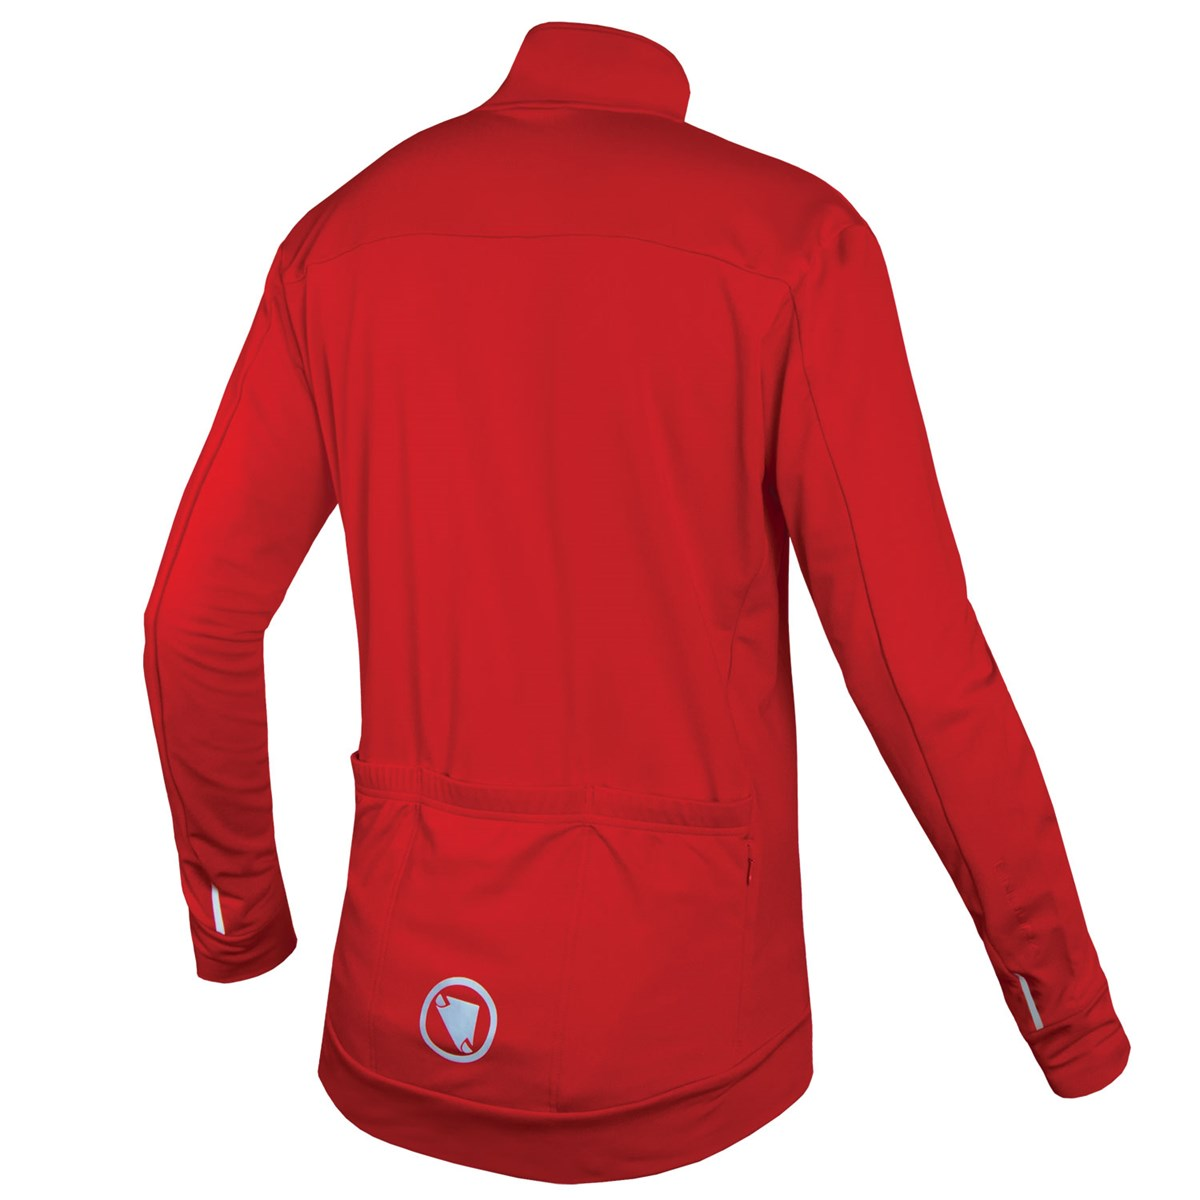 Endura Xtract Roubaix Red Long Sleeve Cycling Jersey £59.99 14cce2c63